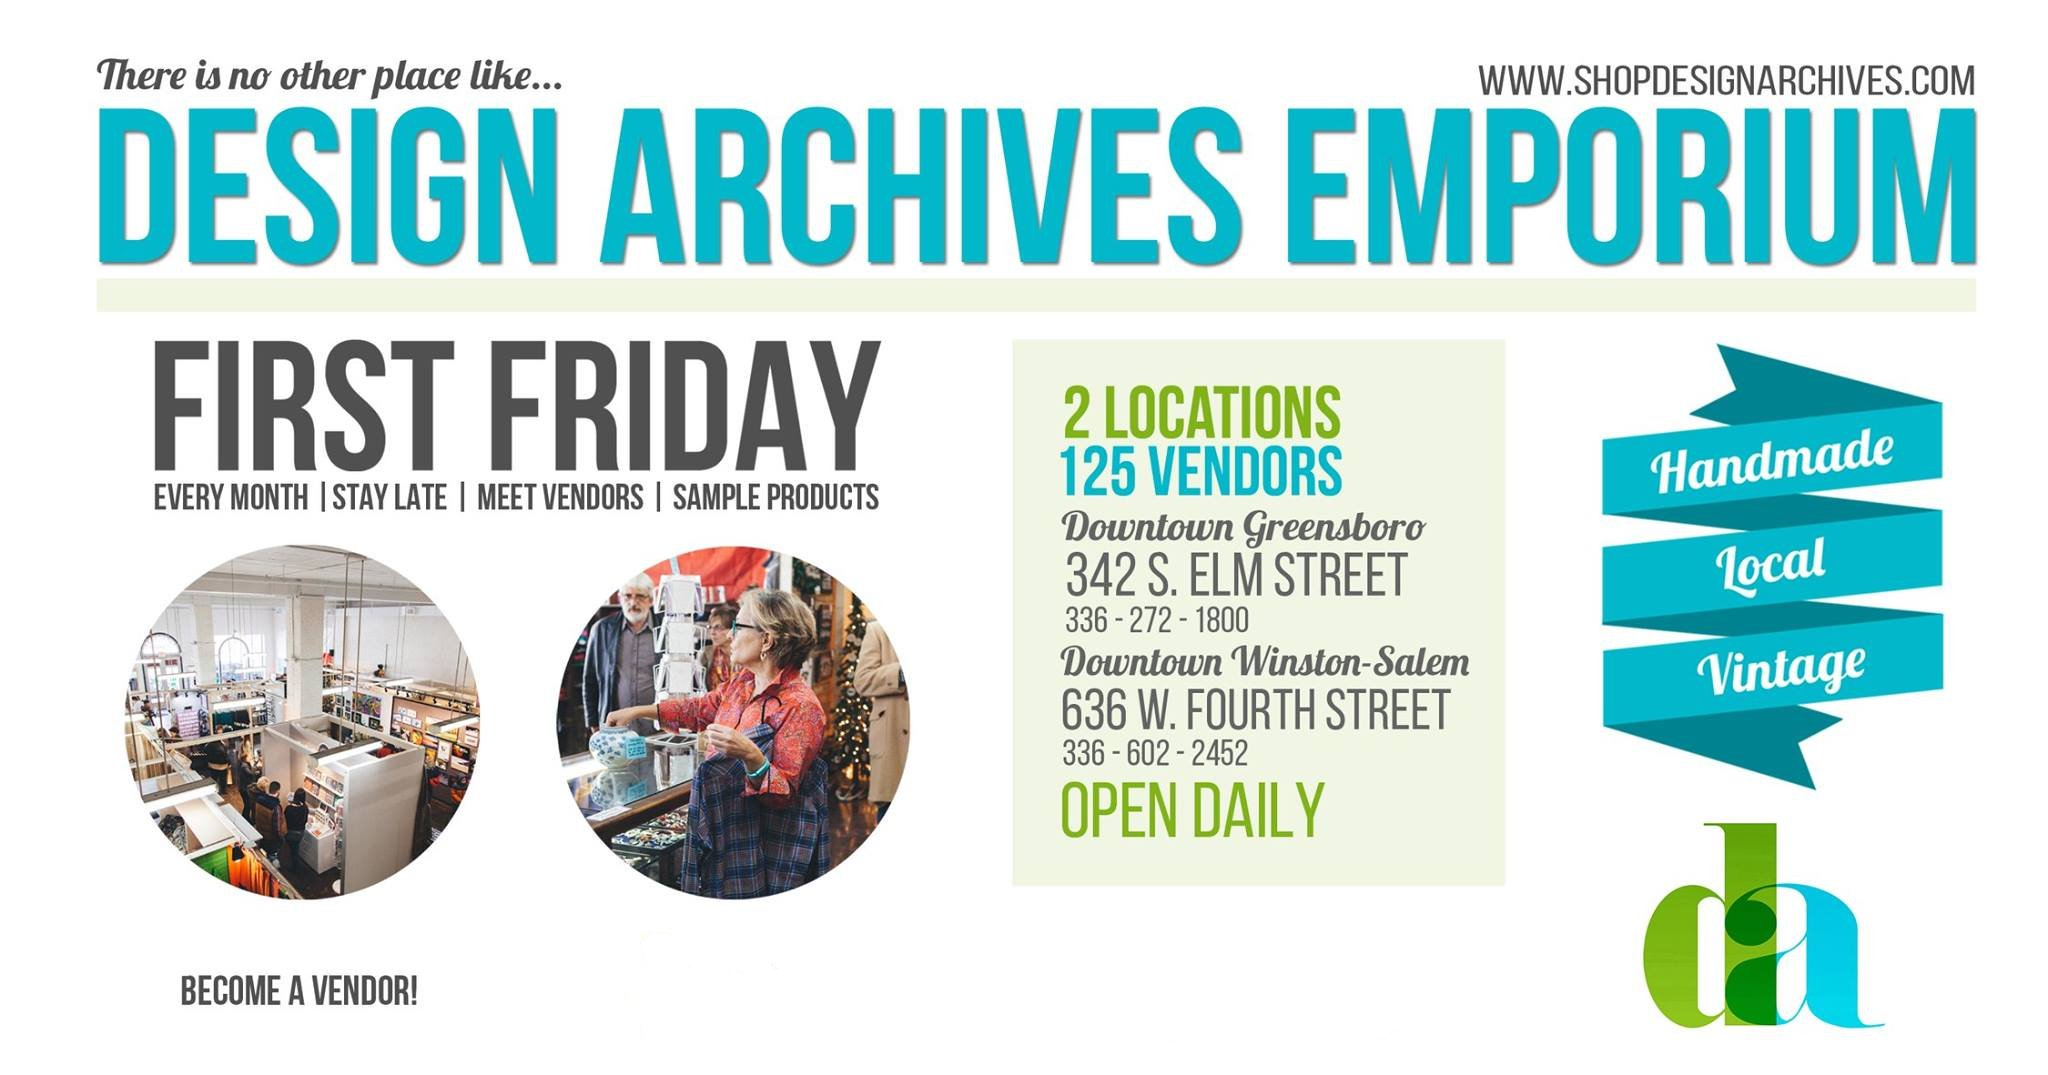 Design Archives - First Friday